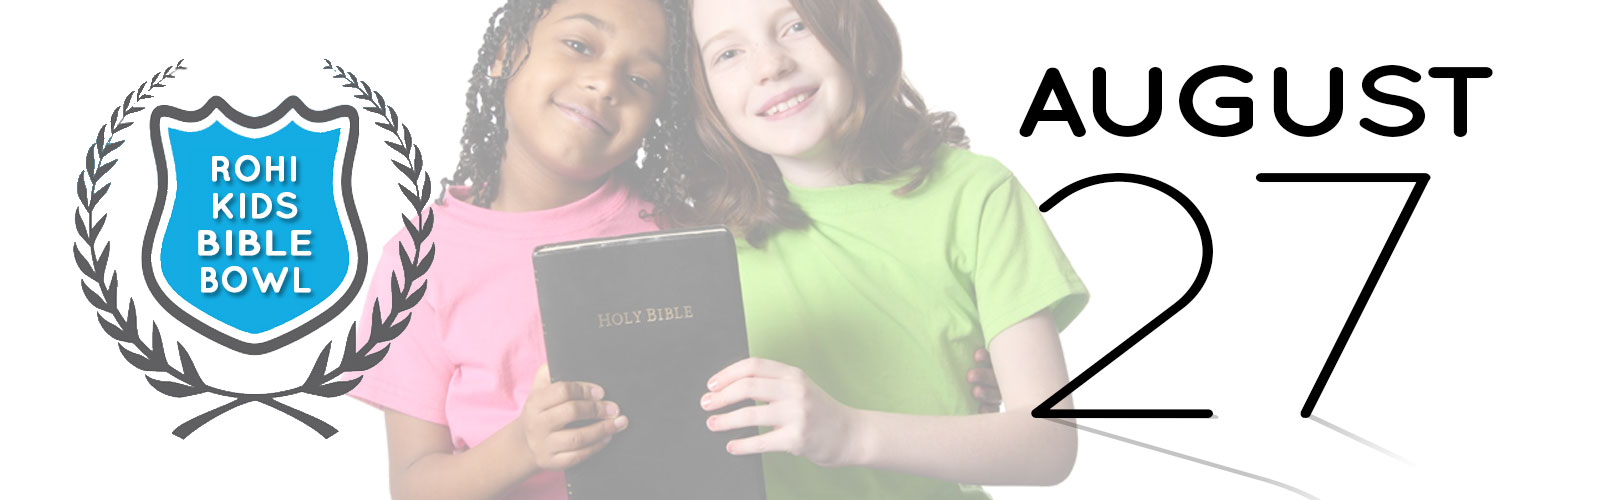 Rohi Kids Bible Bowl - August 27th